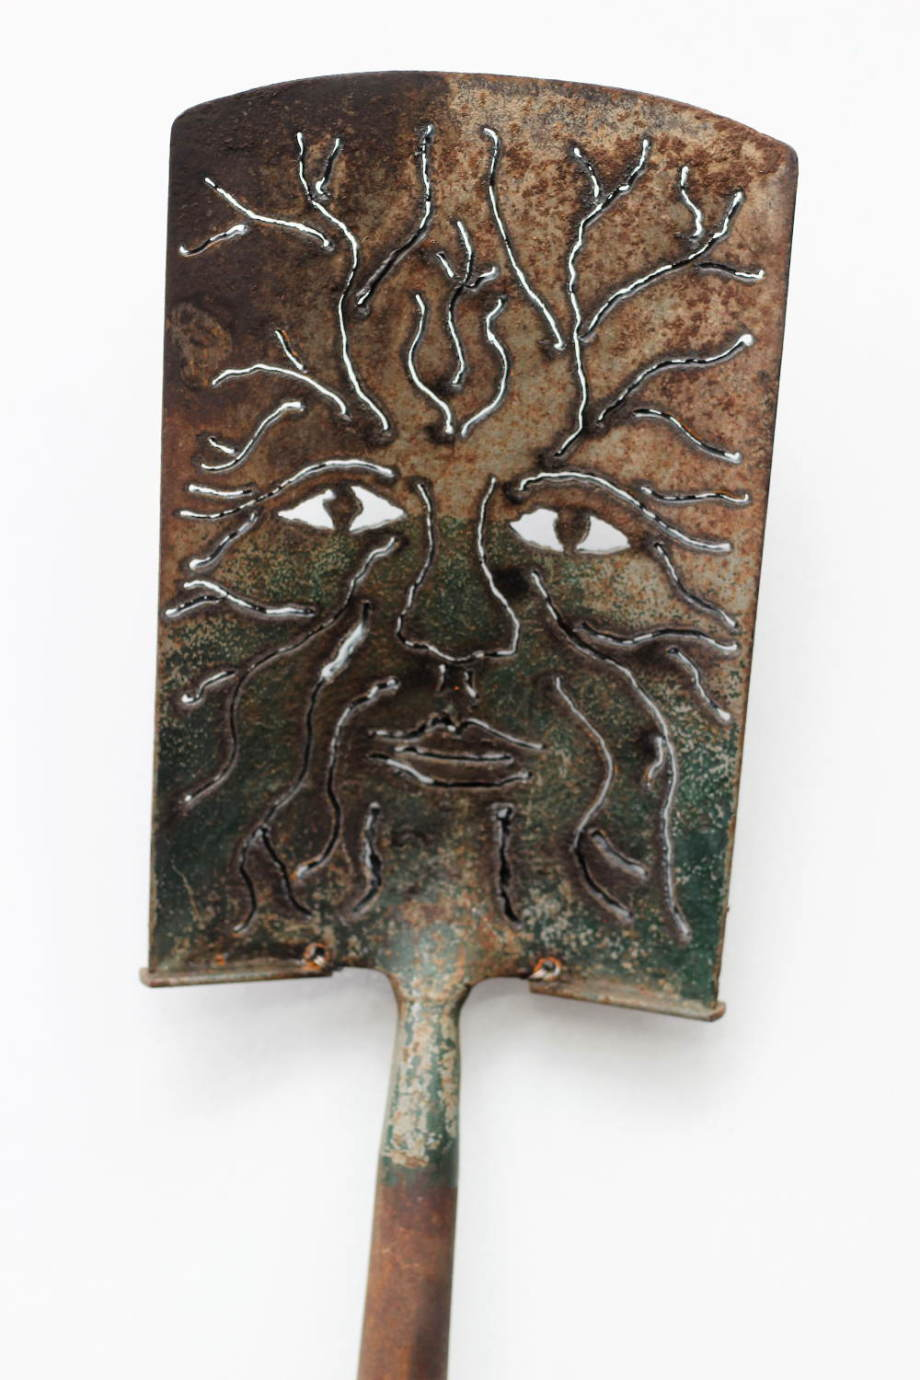 Green Man shovel